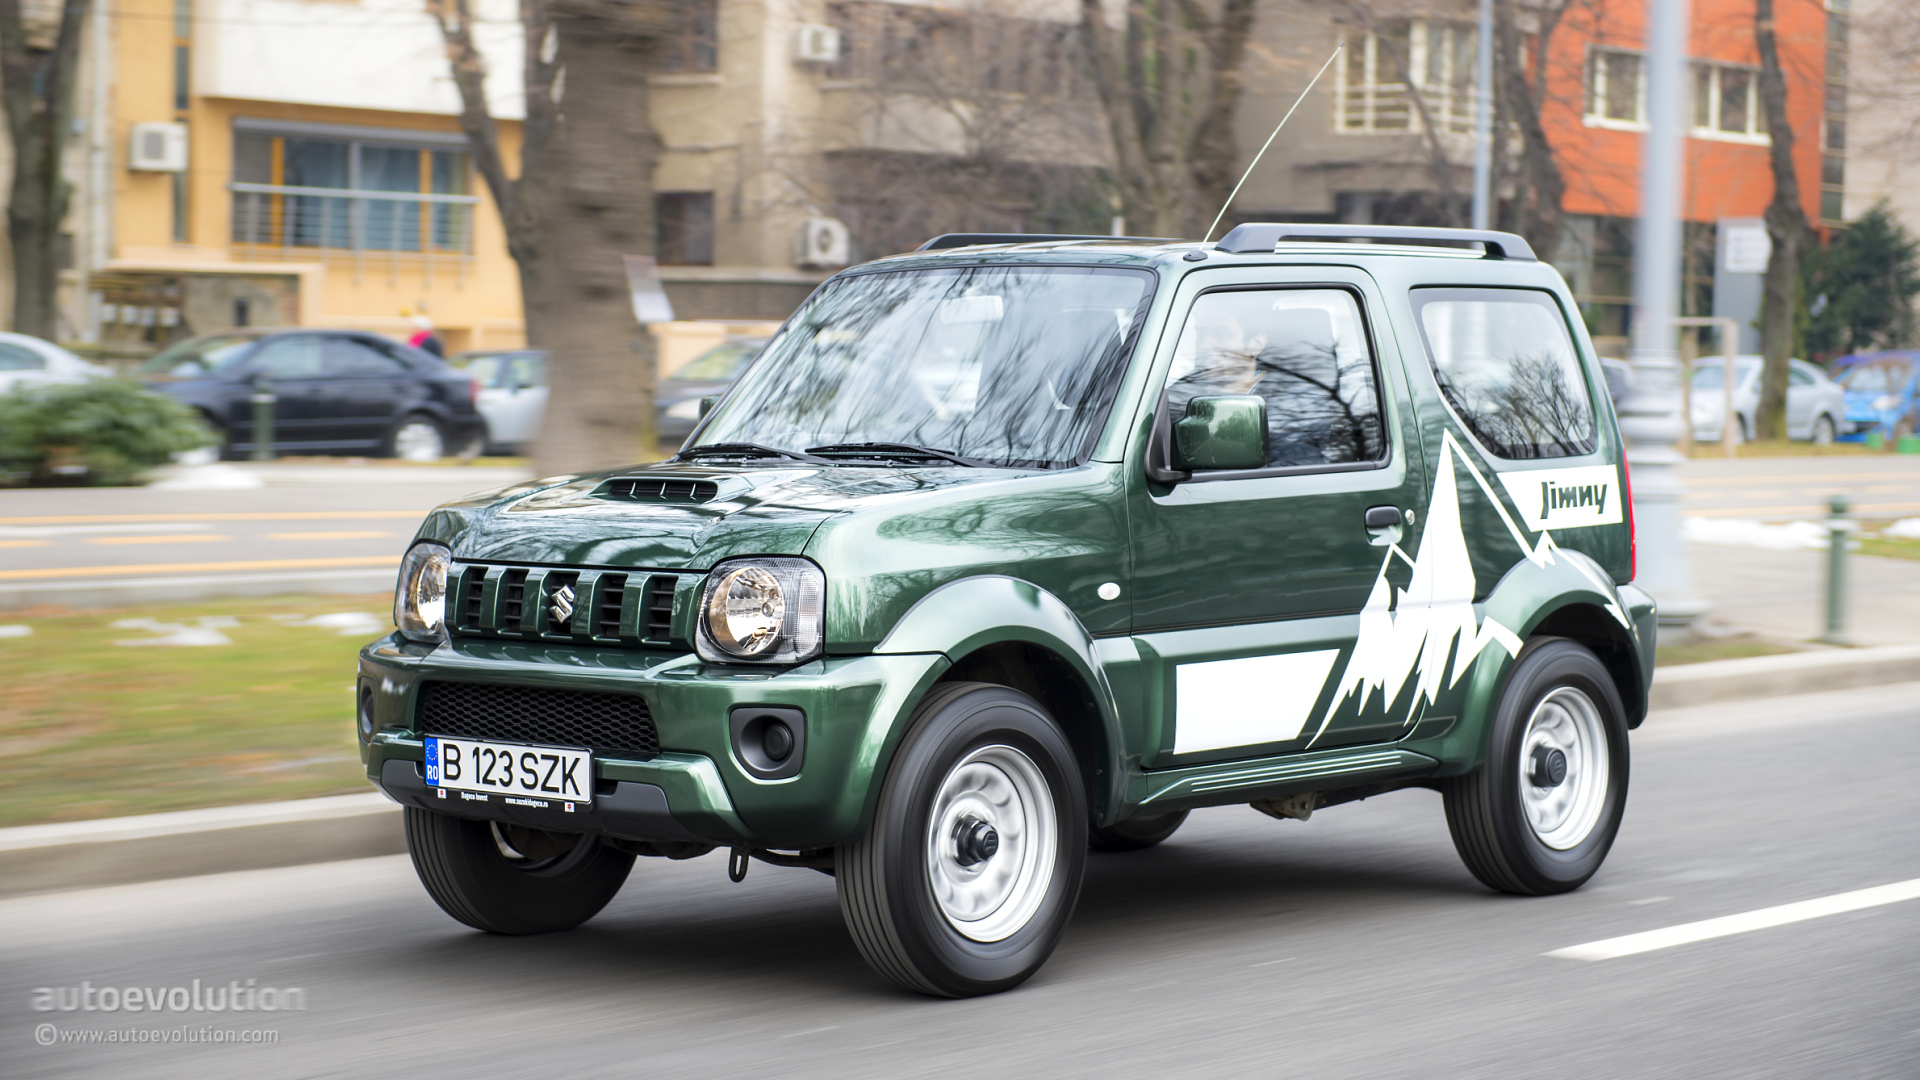 Suzuki Jimny Hd Wallpapers More David Than Goliath